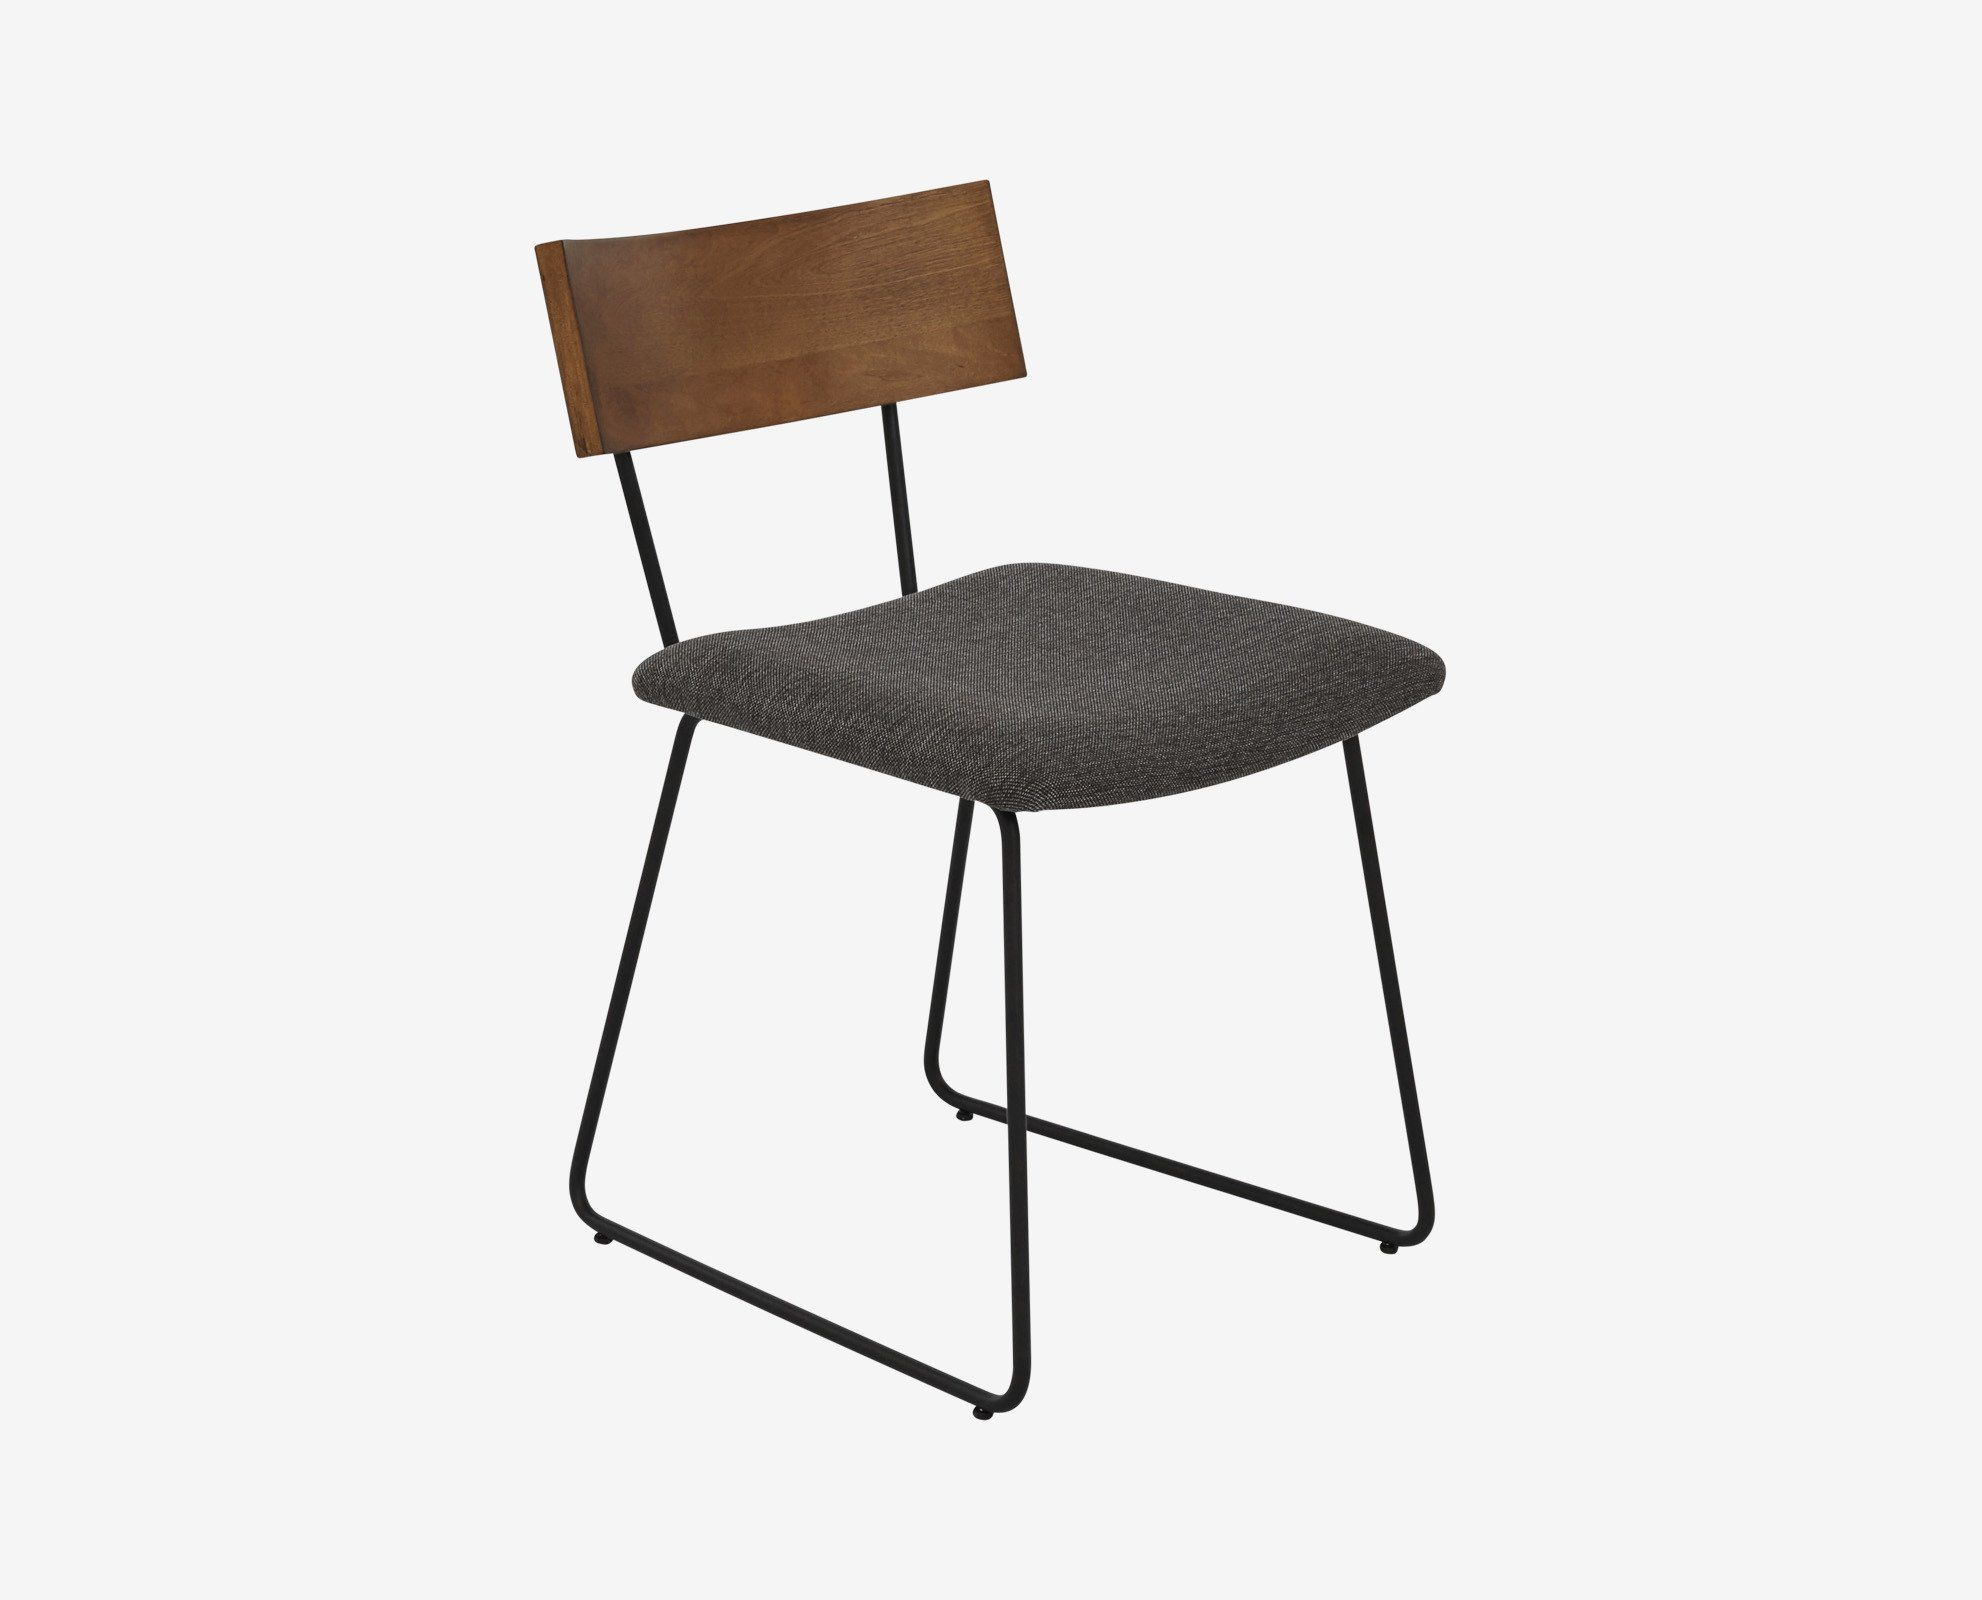 Scandinavian Designs   Complete Your Rustic Industrial Dining Room With The  Karsten Dining Chair. Sleek Black Metal Shapes The Connected Base.